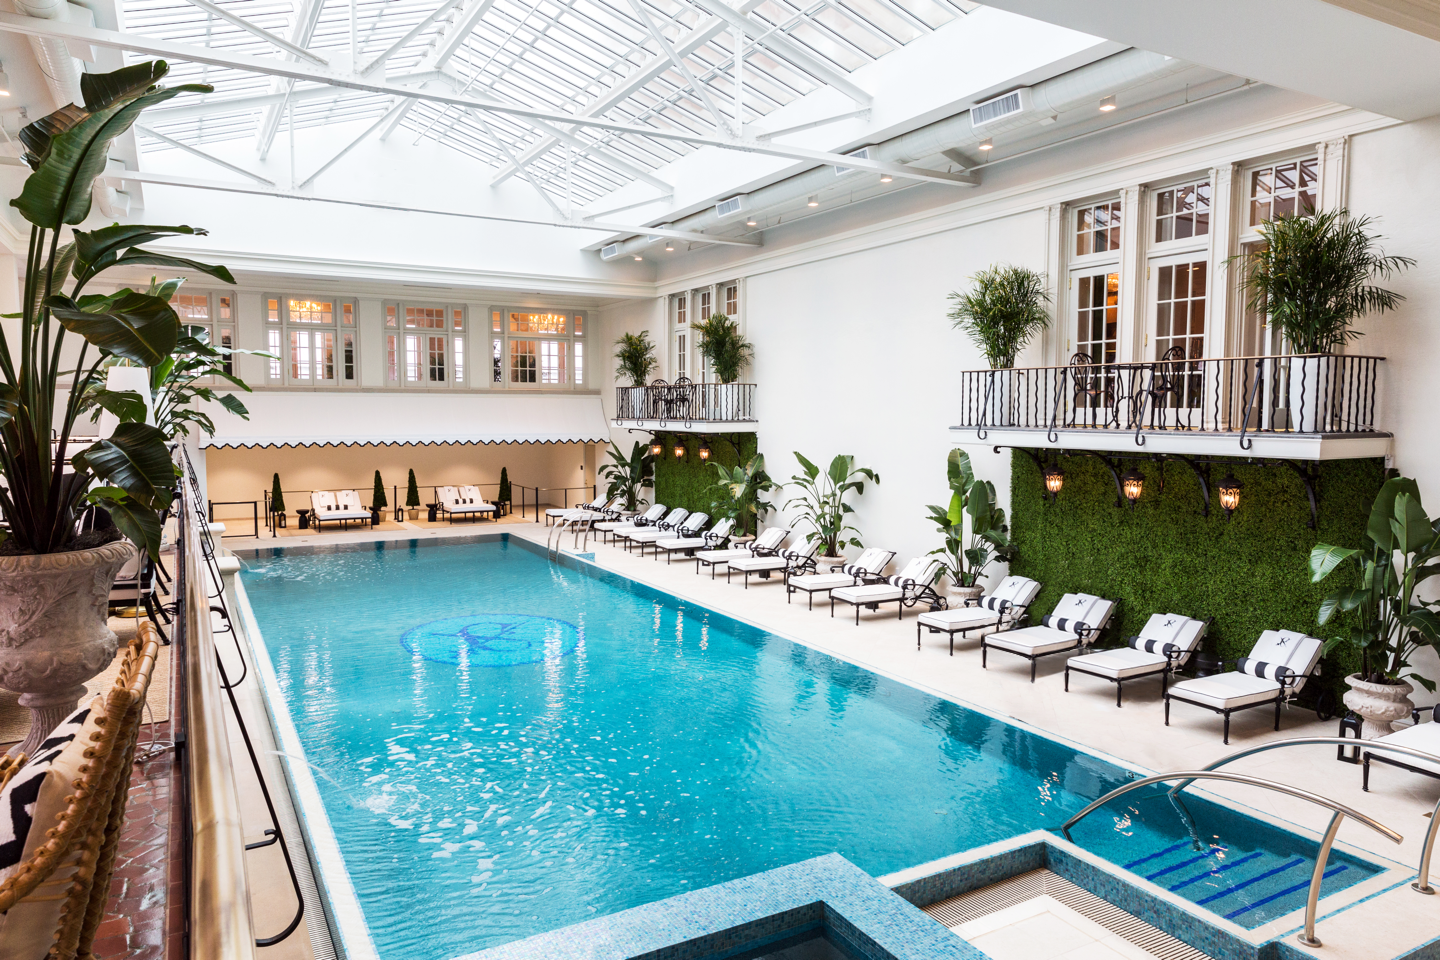 The hotel's pool at The Cavalier Hotel (Image: Ashley Lester)